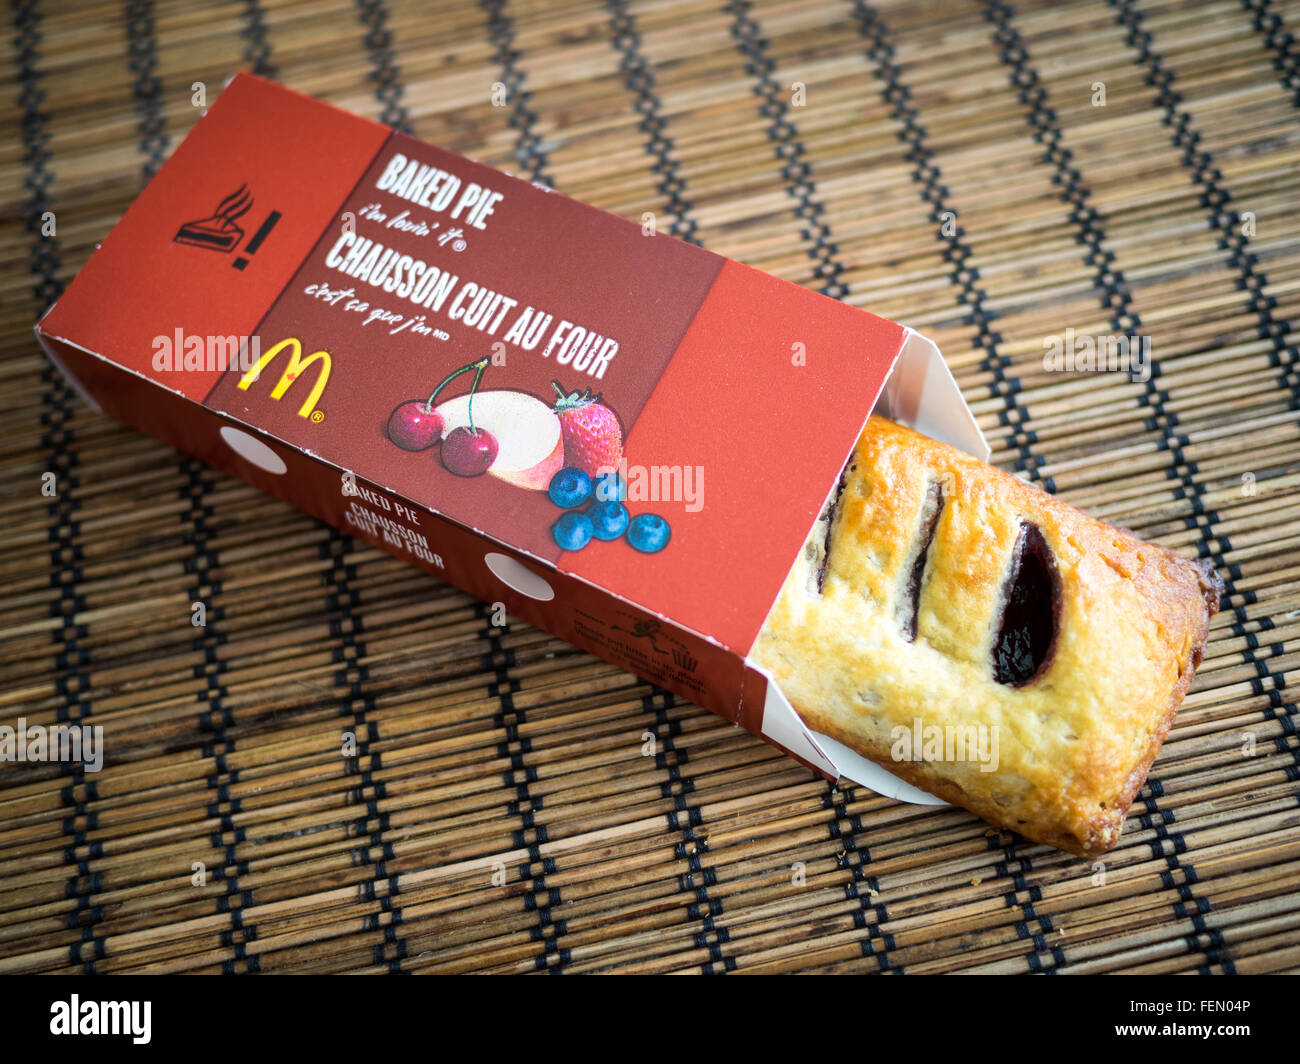 A McDonald's baked blueberry maple pie, a limited time menu item in McDonald's throughout Canada. - Stock Image